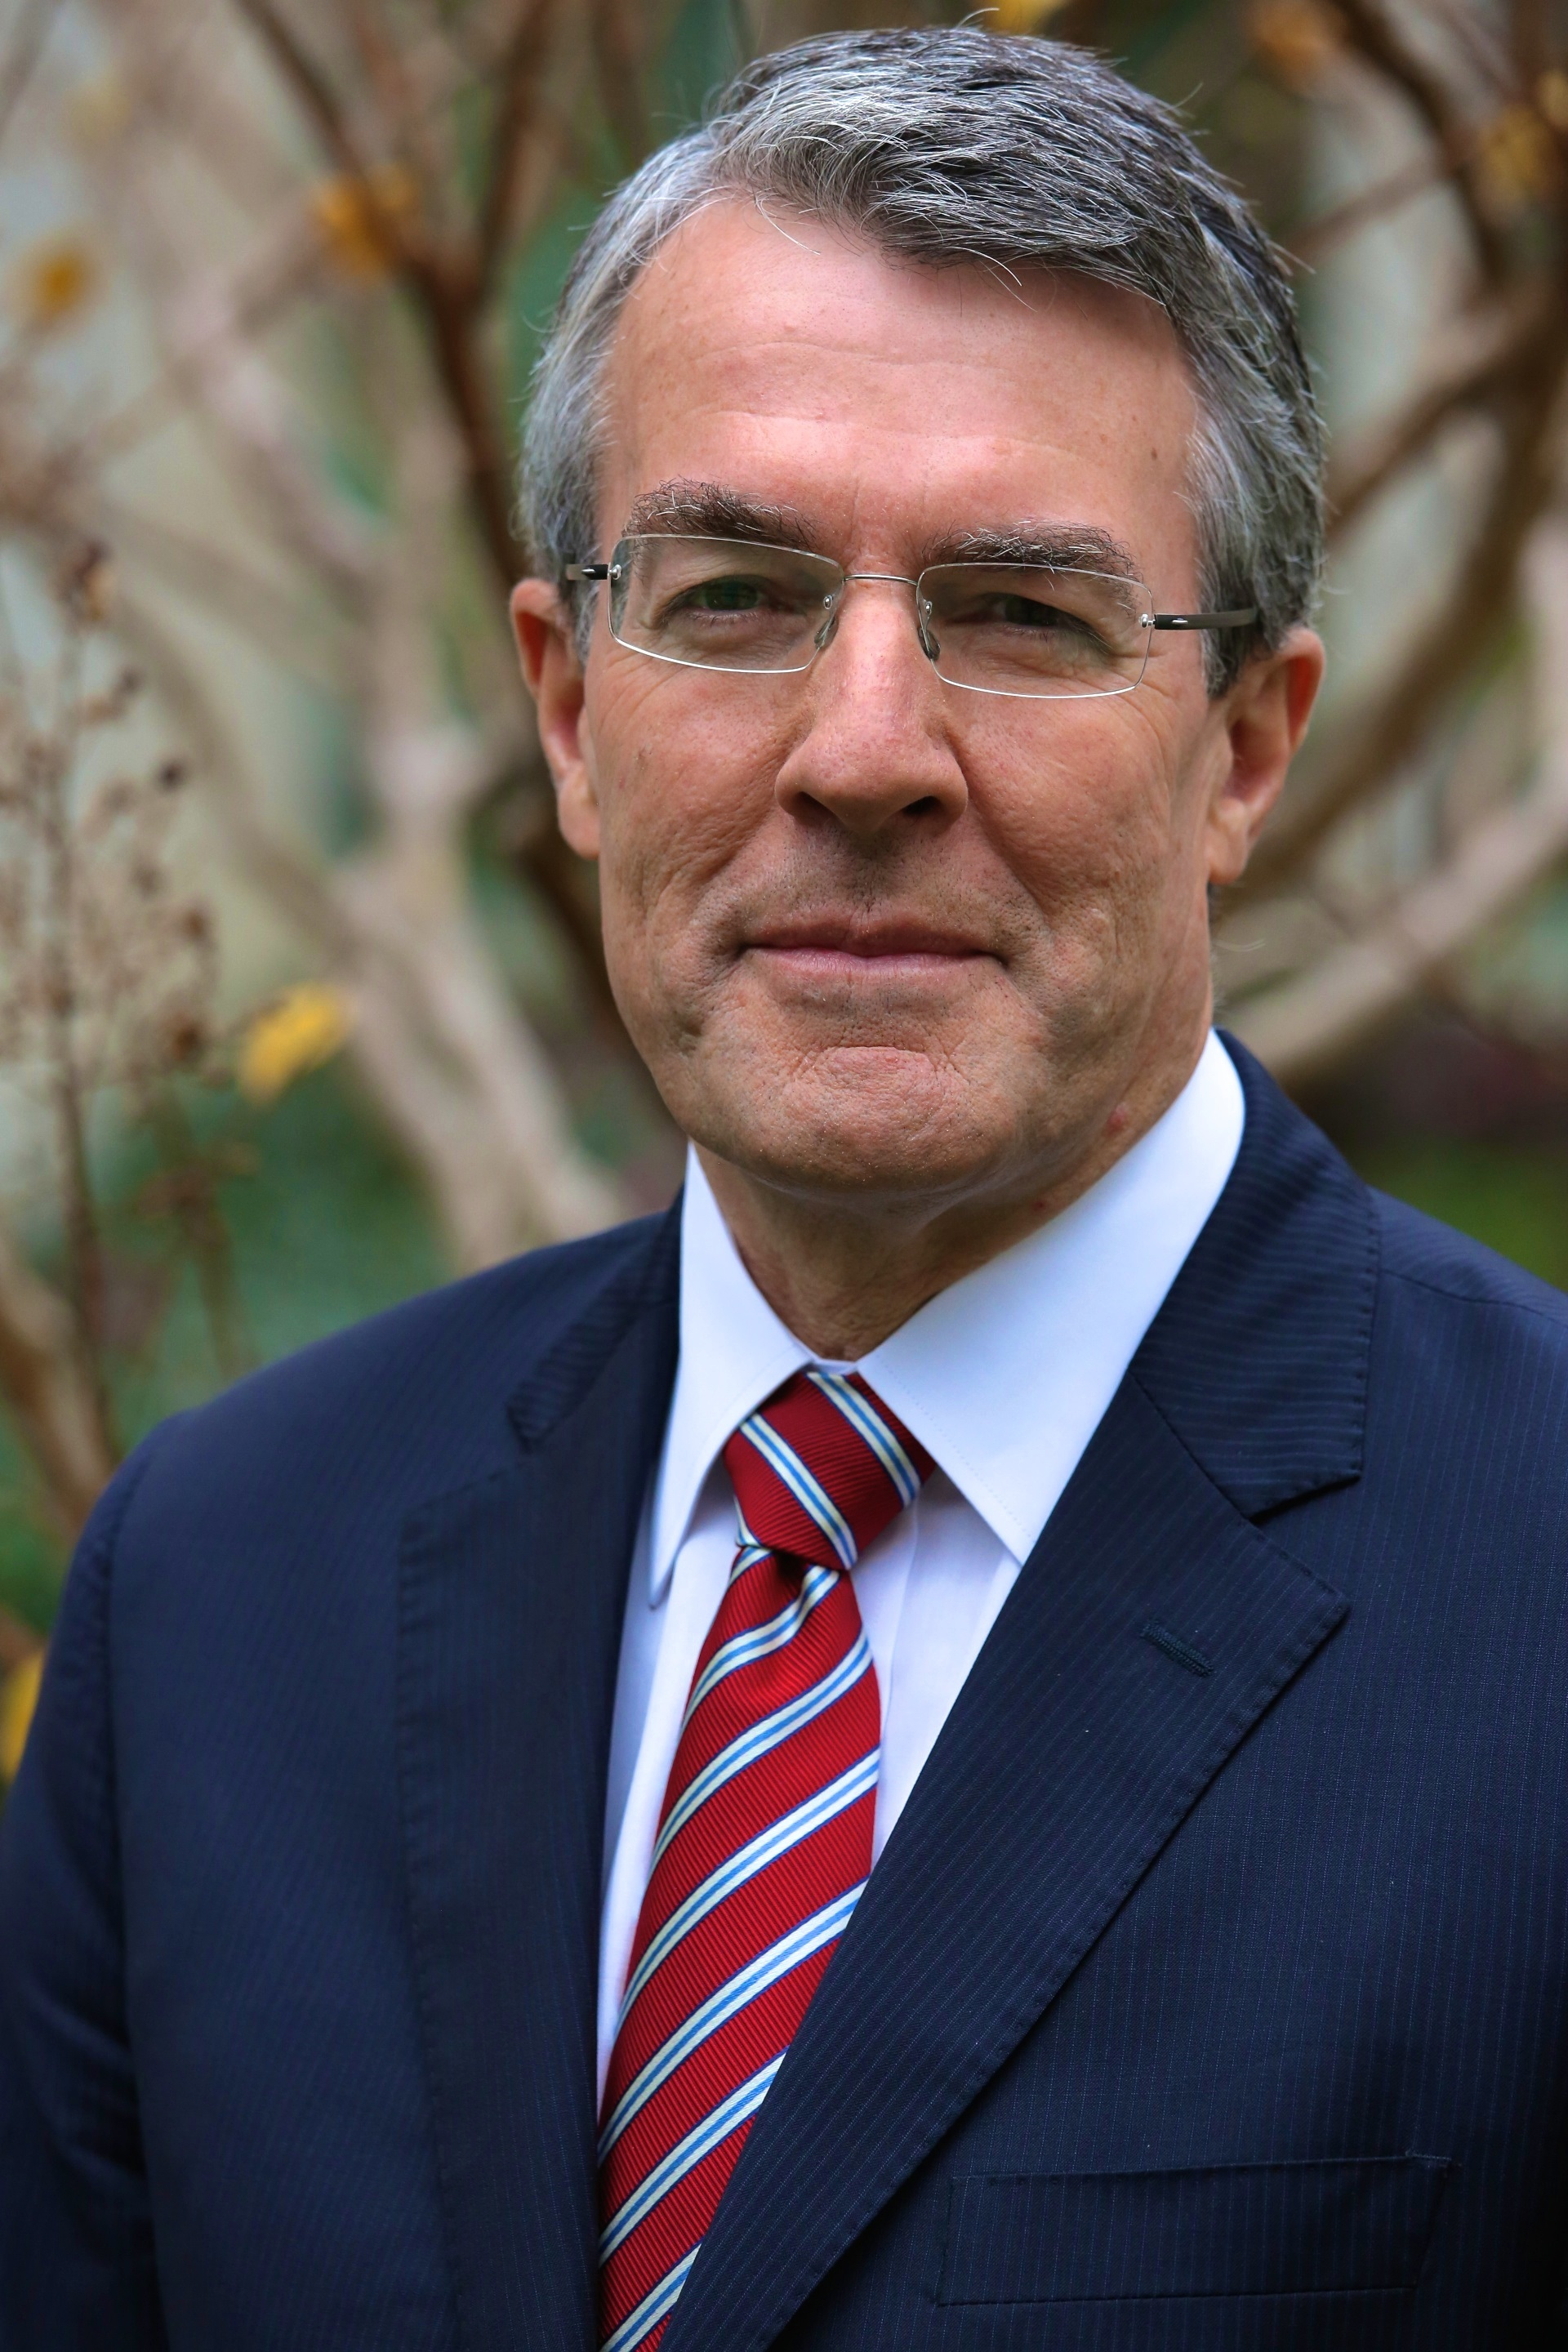 The Hon Mark Dreyfus - 9th ICHRE Concerence, International Cinference on Human Rights Education 2018